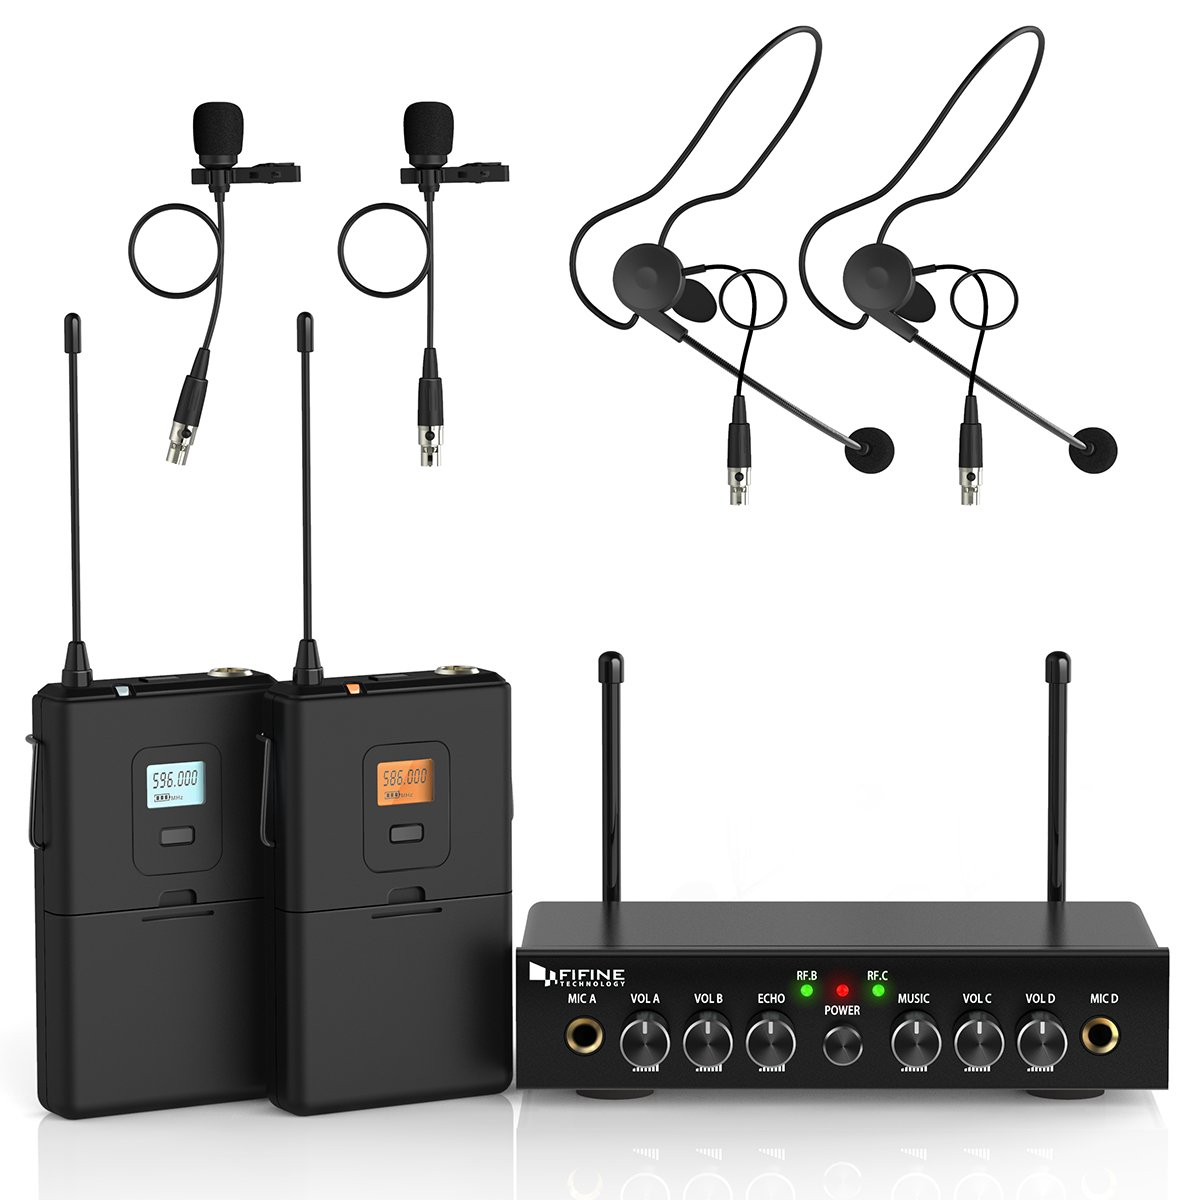 Wireless Microphone System,Fifine UHF Dual Channel Wireless Microphone Set with 2 Headsets & 2 Lapel Lavalier Microphone.Ideal for Church, Weddings,Presentations,School Play.(K038)